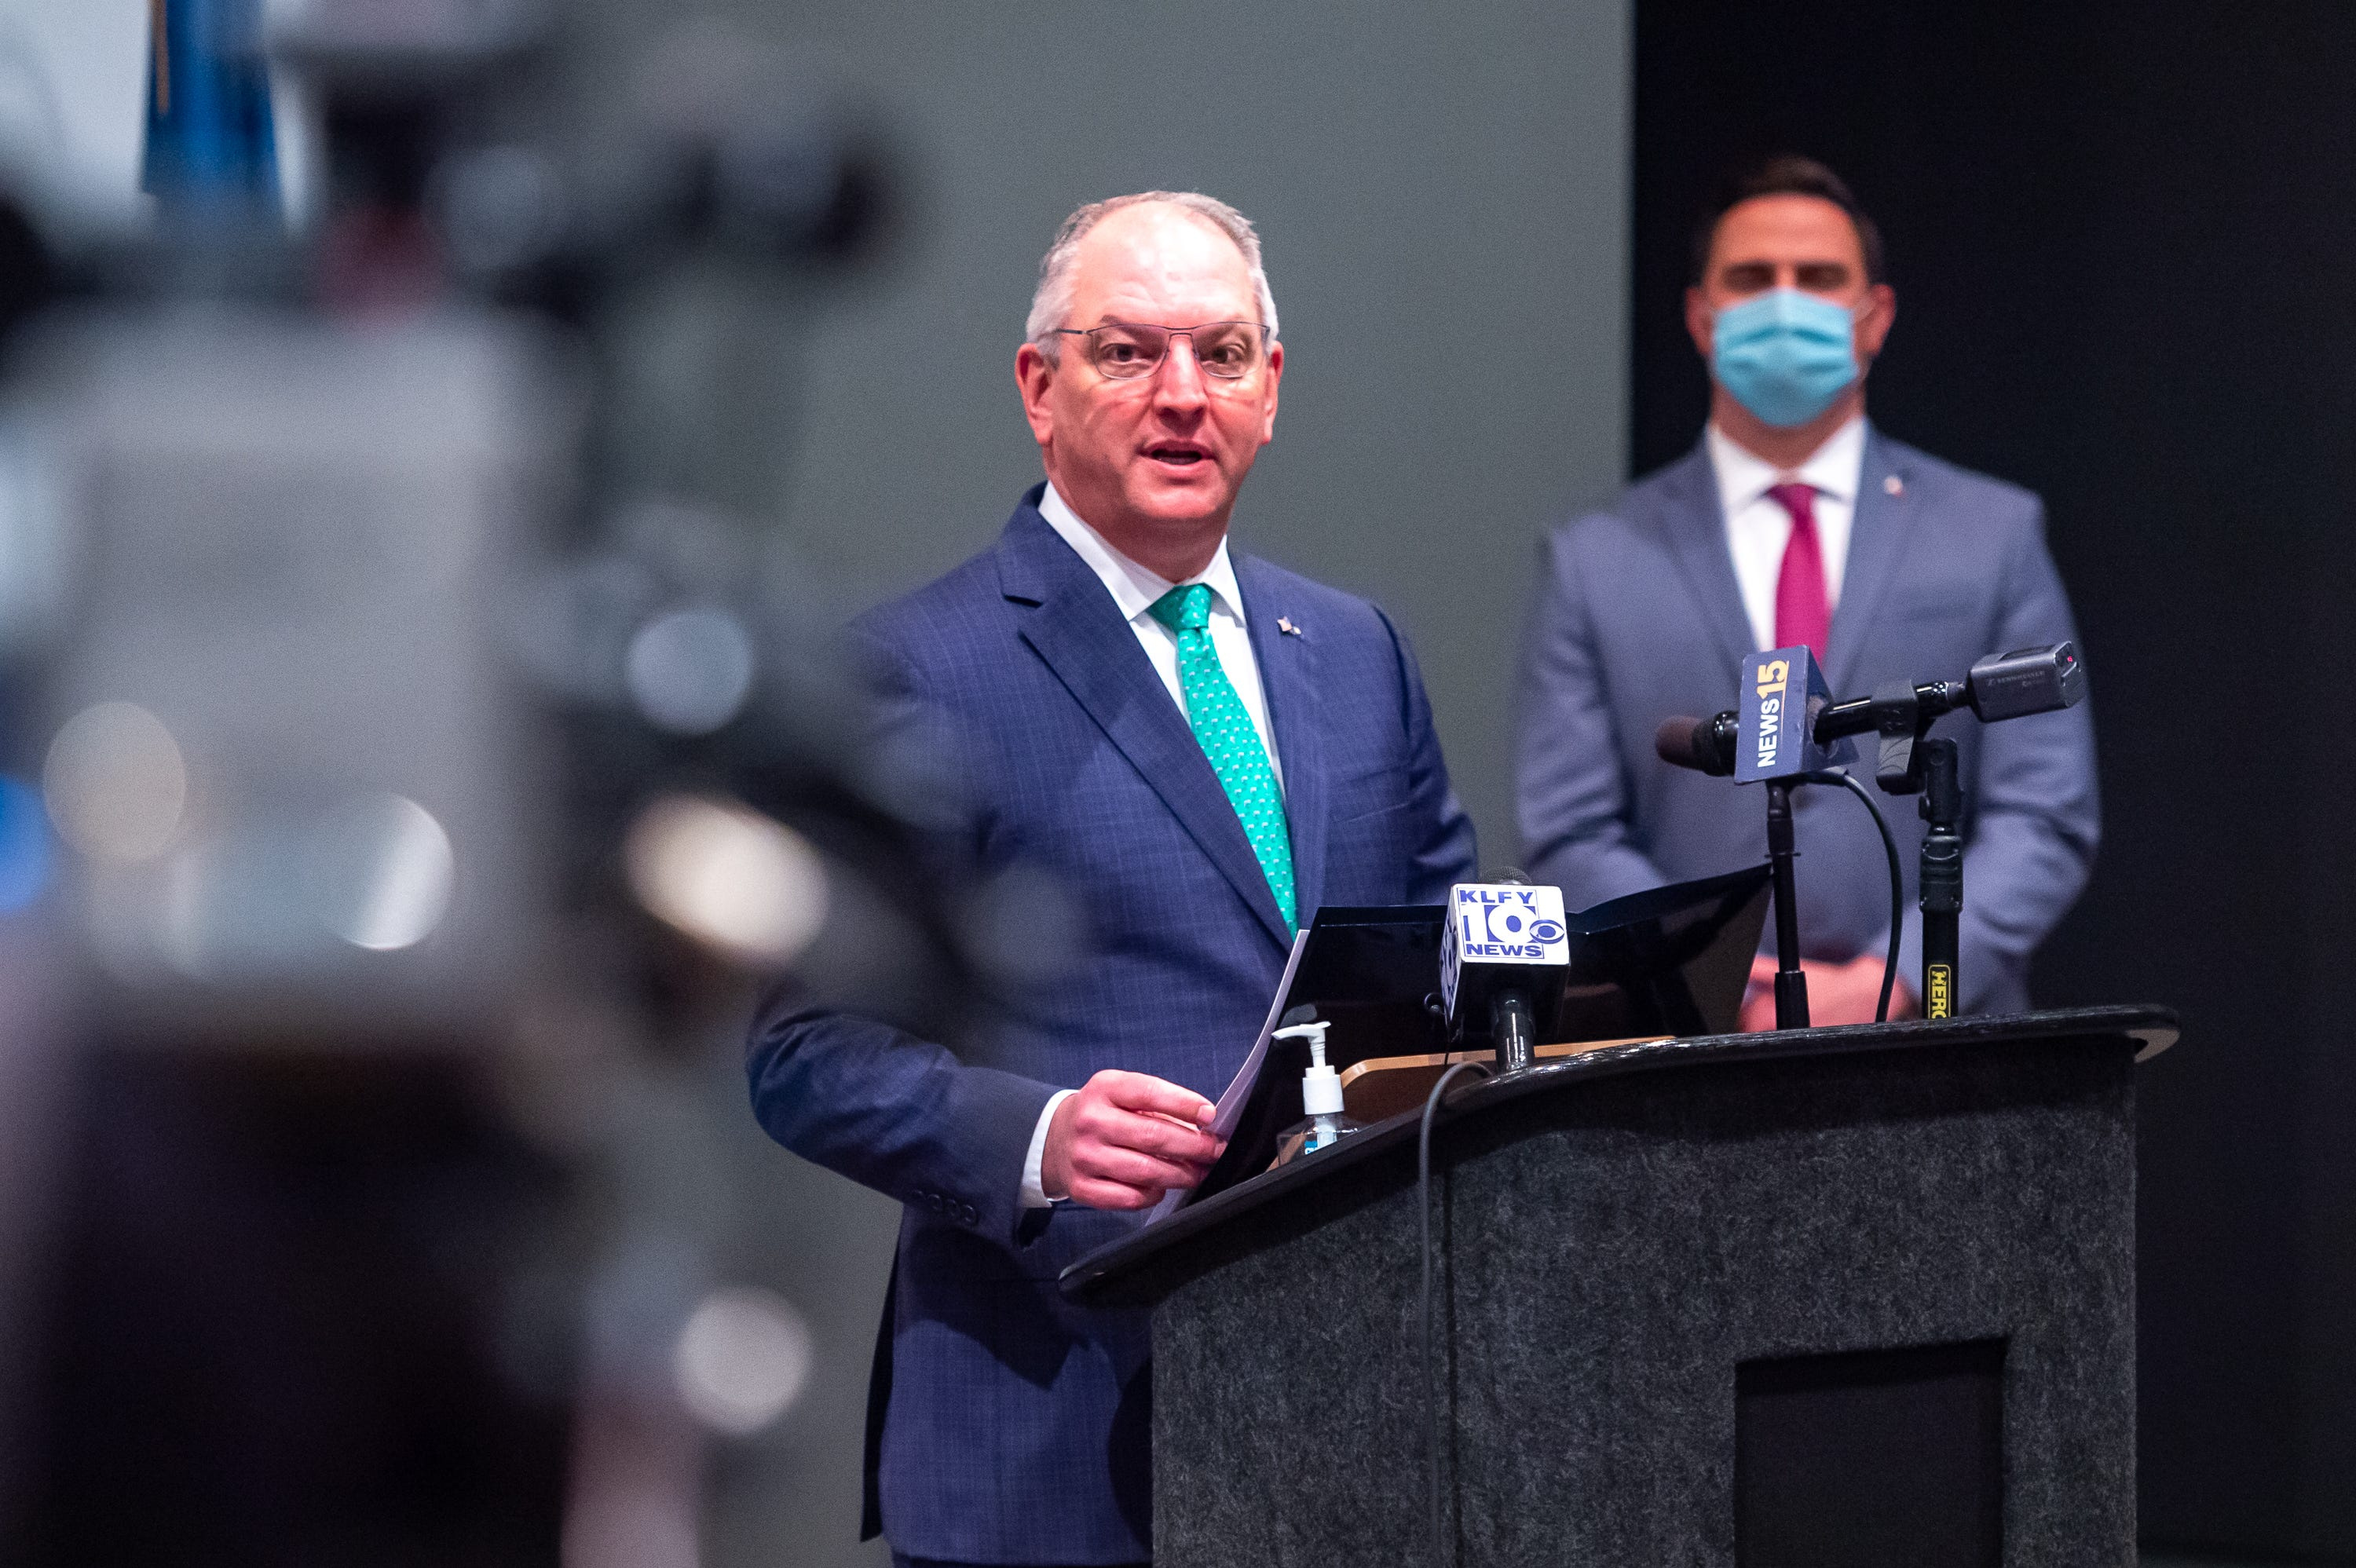 Louisiana Gov. John Bel Edwards was criticized early in the pandemic for his stay-at-home order in the spring that shut down the state's economy.